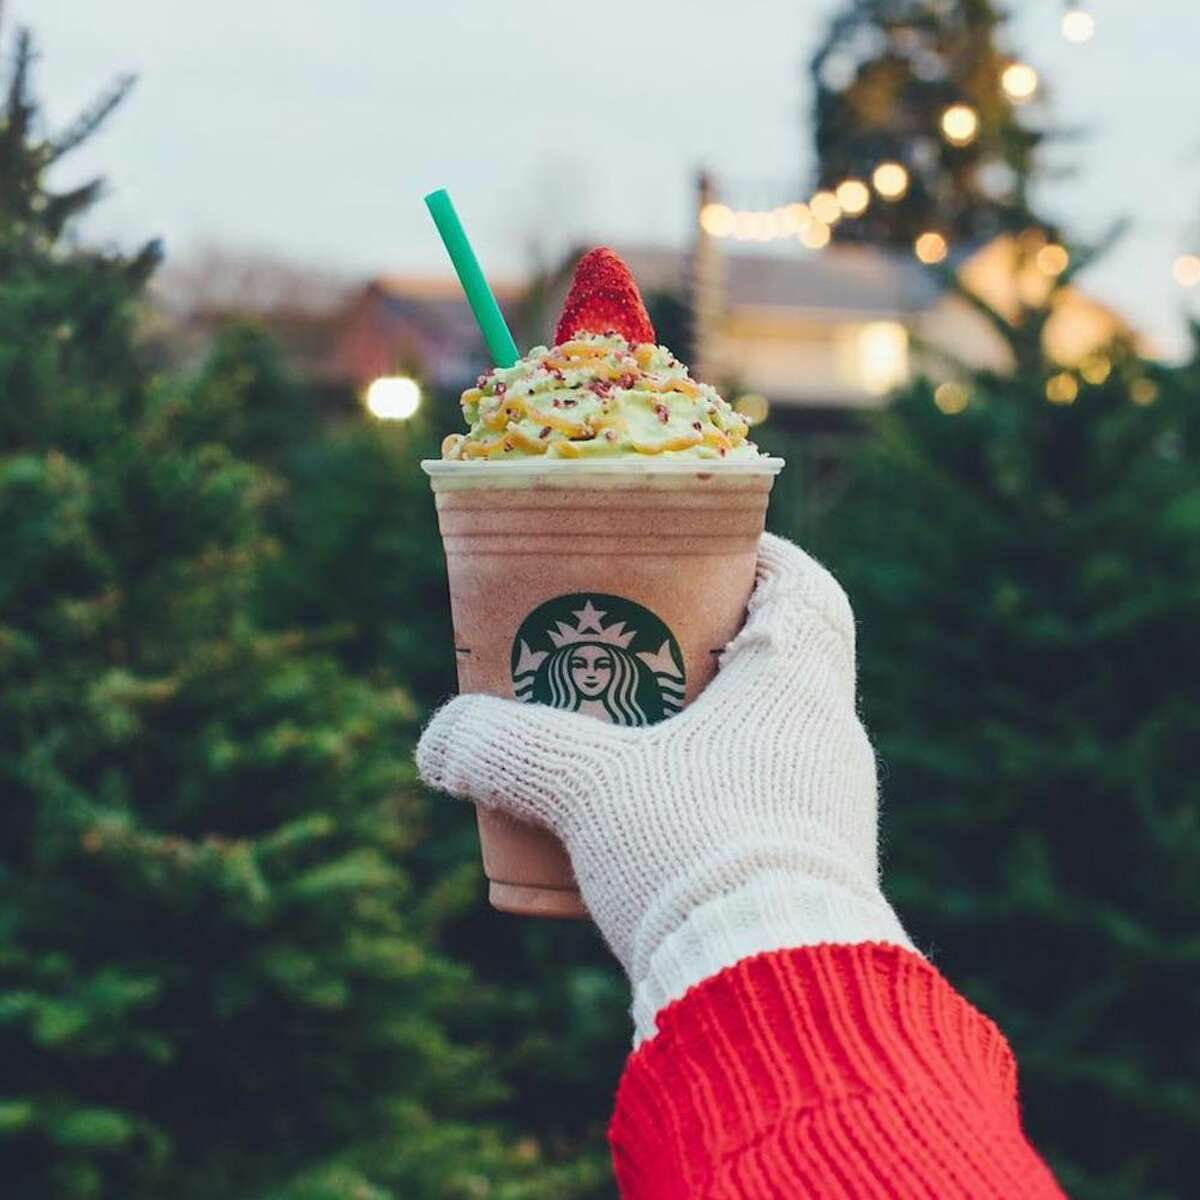 Christmas Tree Frappuccino - United States and Canada: Christmastime is meant to involve festive treats, and this mocha and peppermint drink is fit for the occasion. The Christmas Tree Frappuccino is topped with matcha-infused whipped cream, caramel drizzle, candied cranberries, and a strawberry